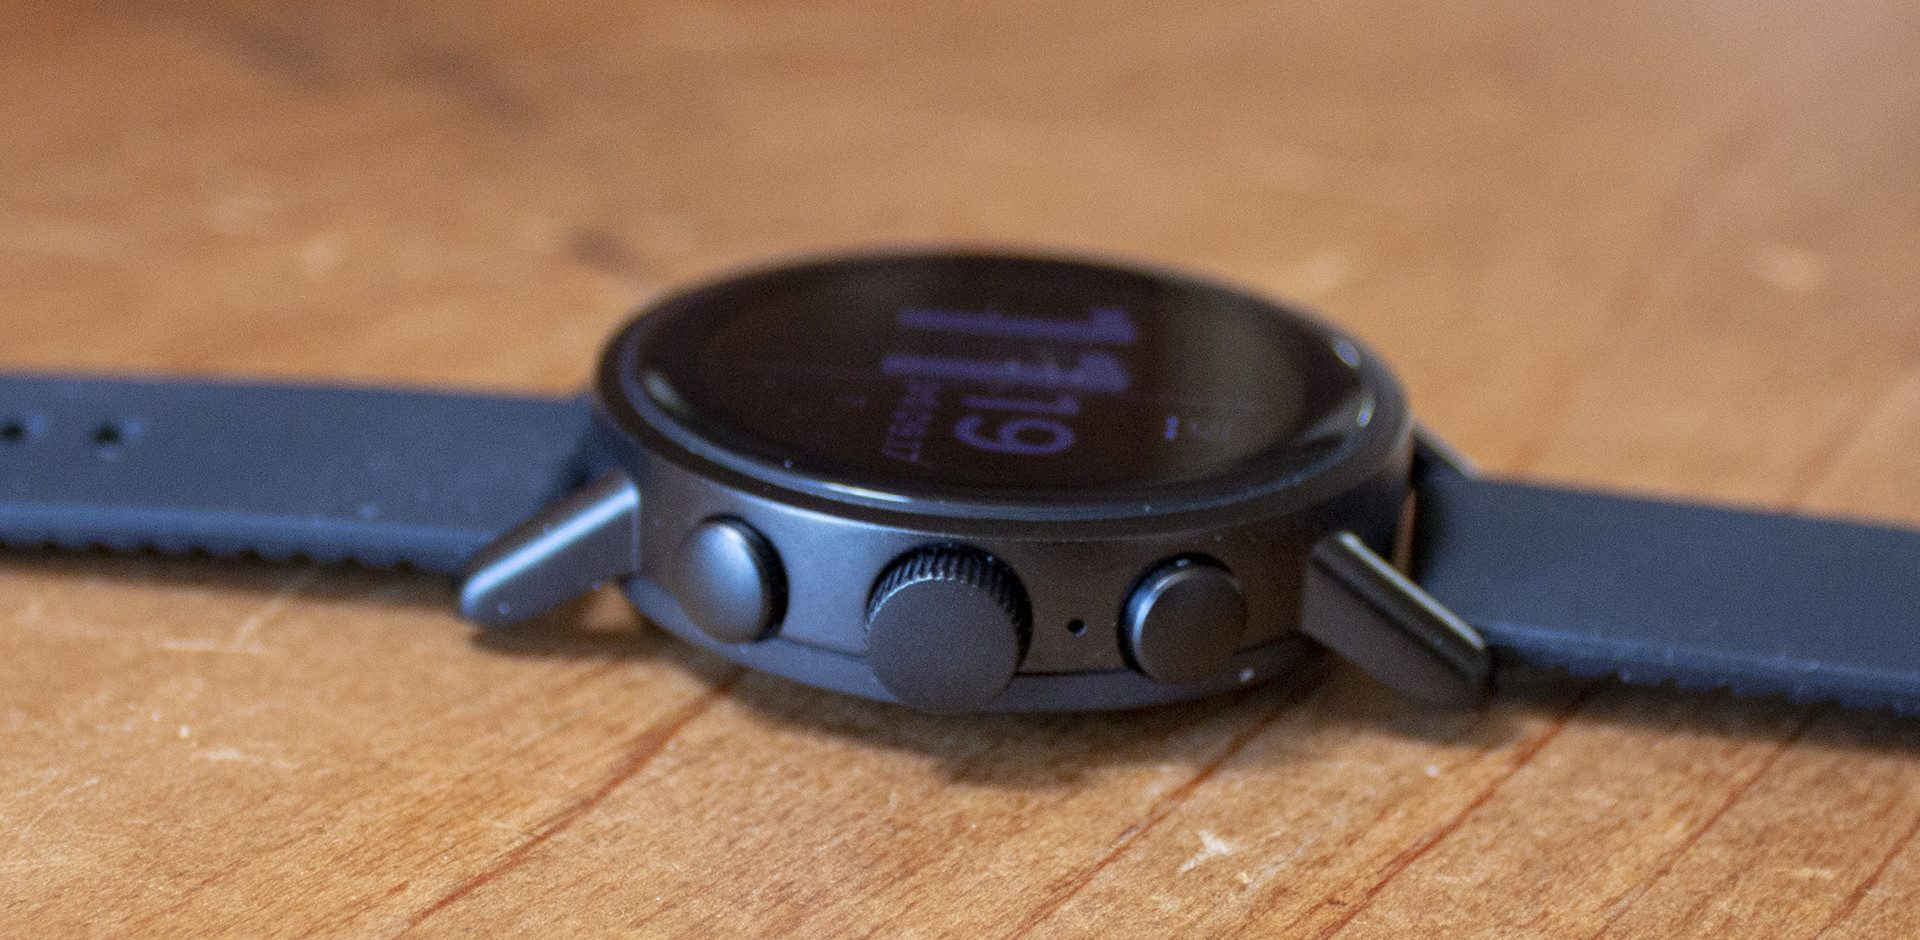 Misfit-Vapor-X-Smartwatch-Three-buttons-on-side-including-rotating-crown